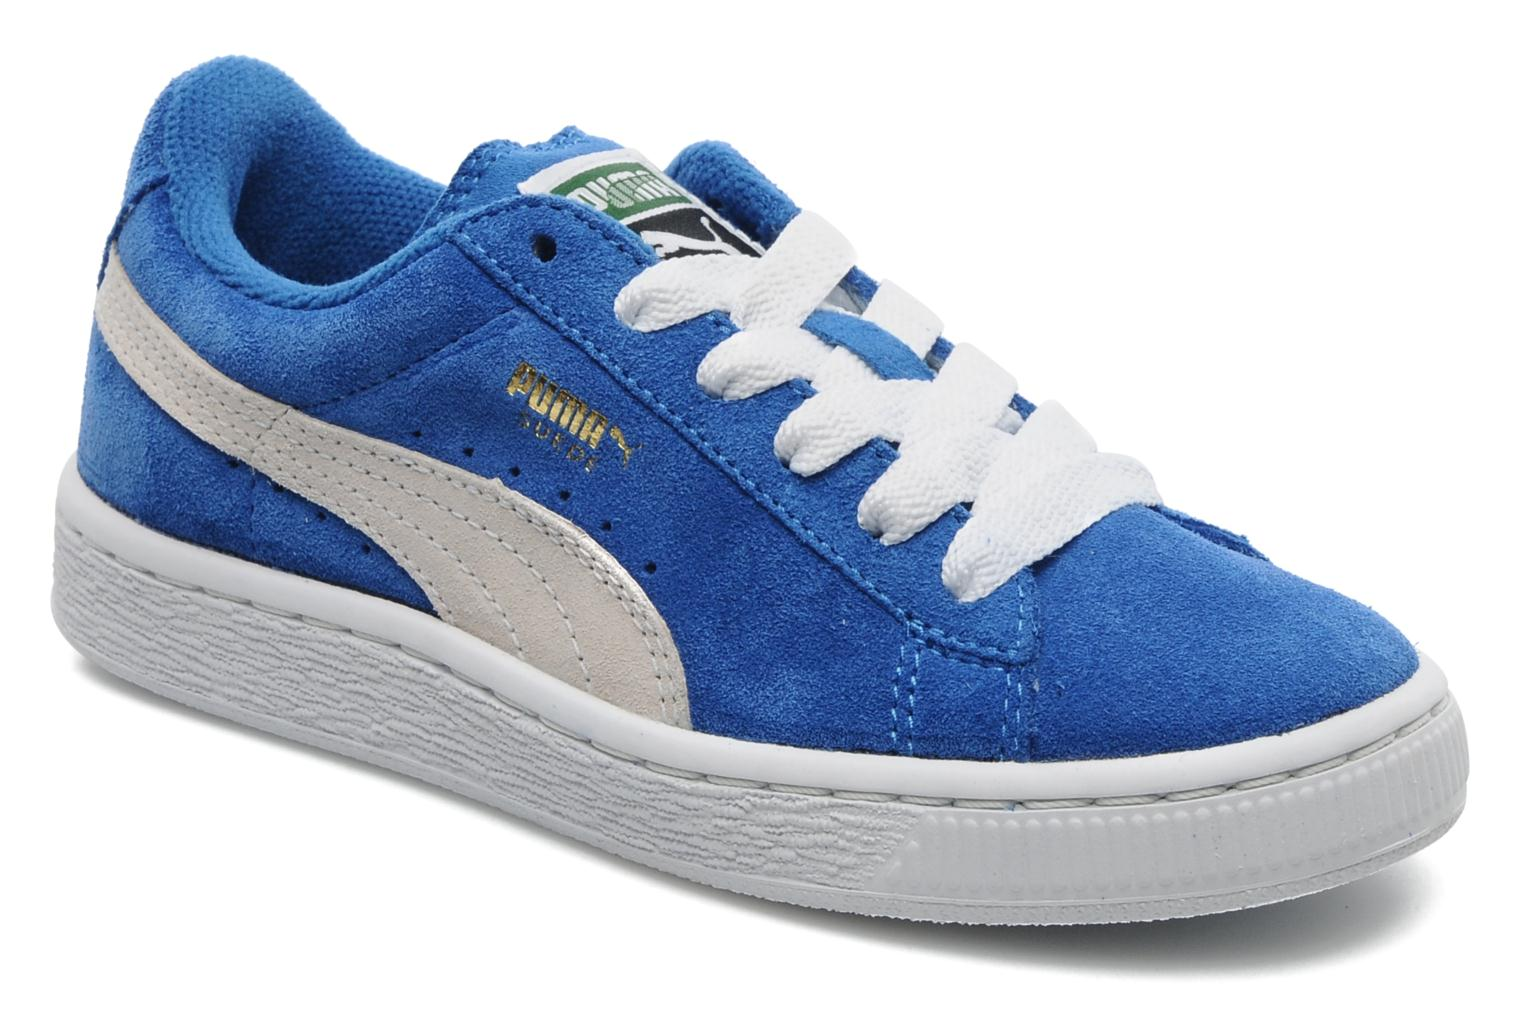 Suede Jr. Blue-Wh